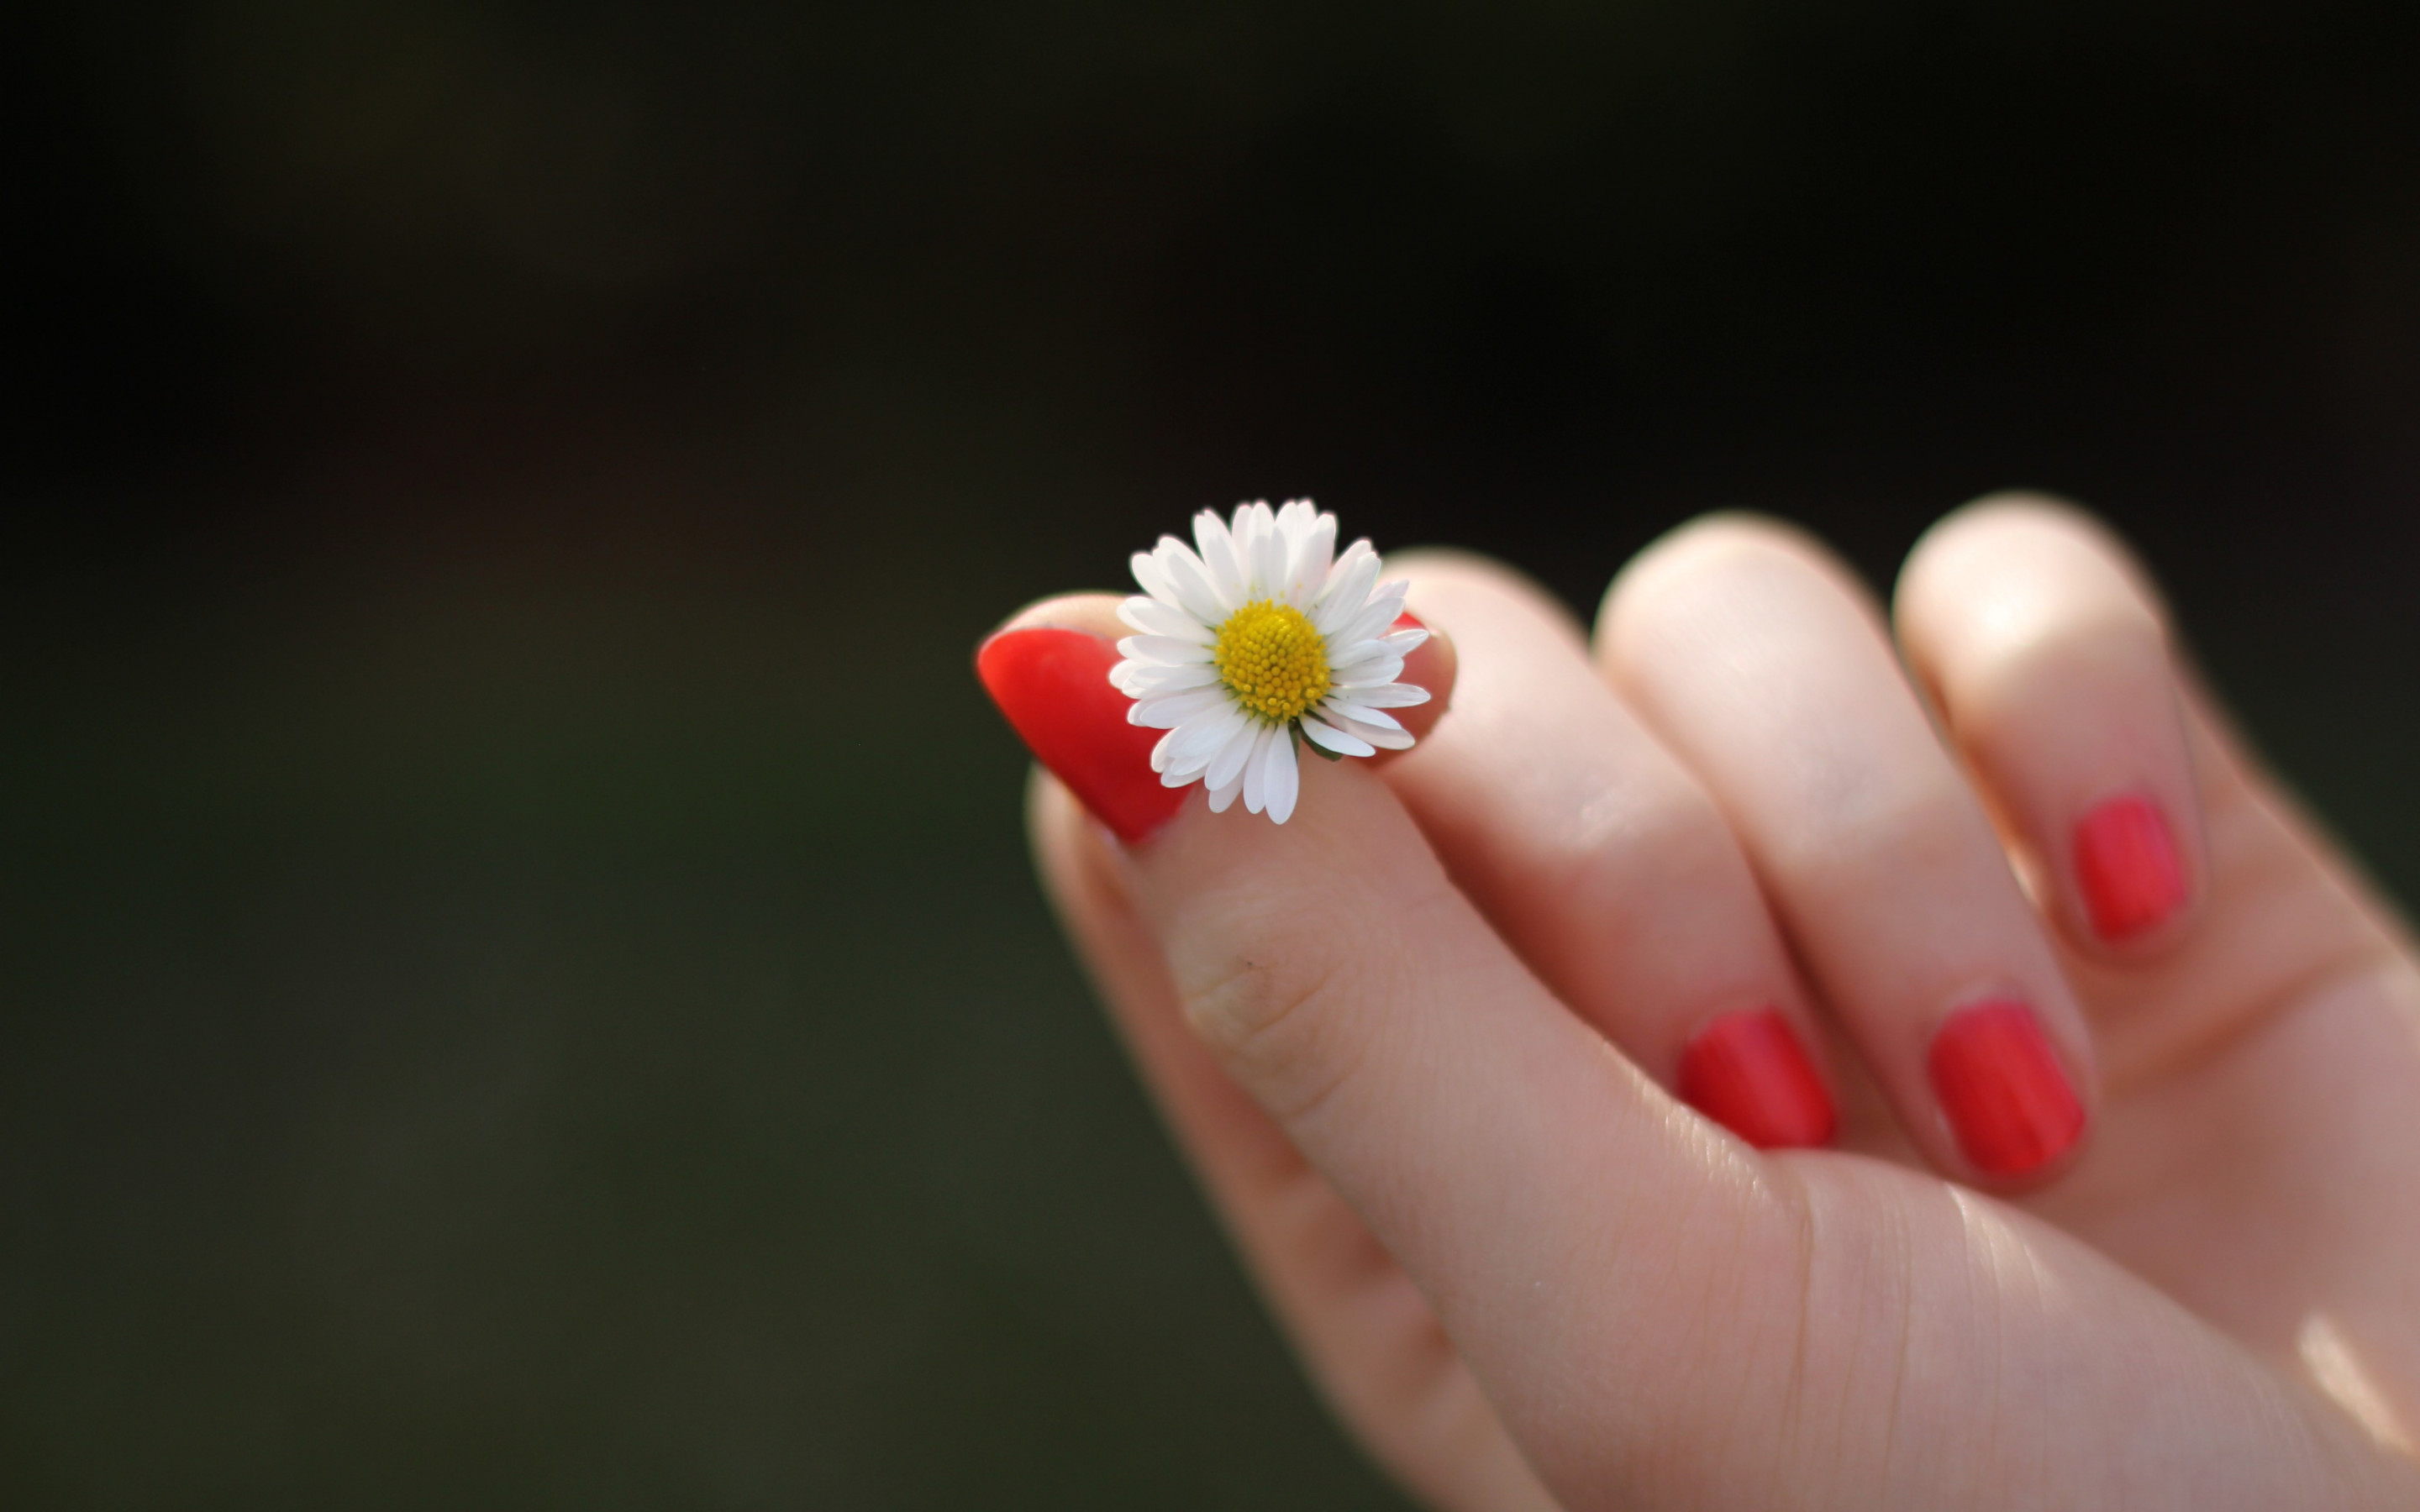 Girl with red nails and a daisy flower wallpaper 2880x1800